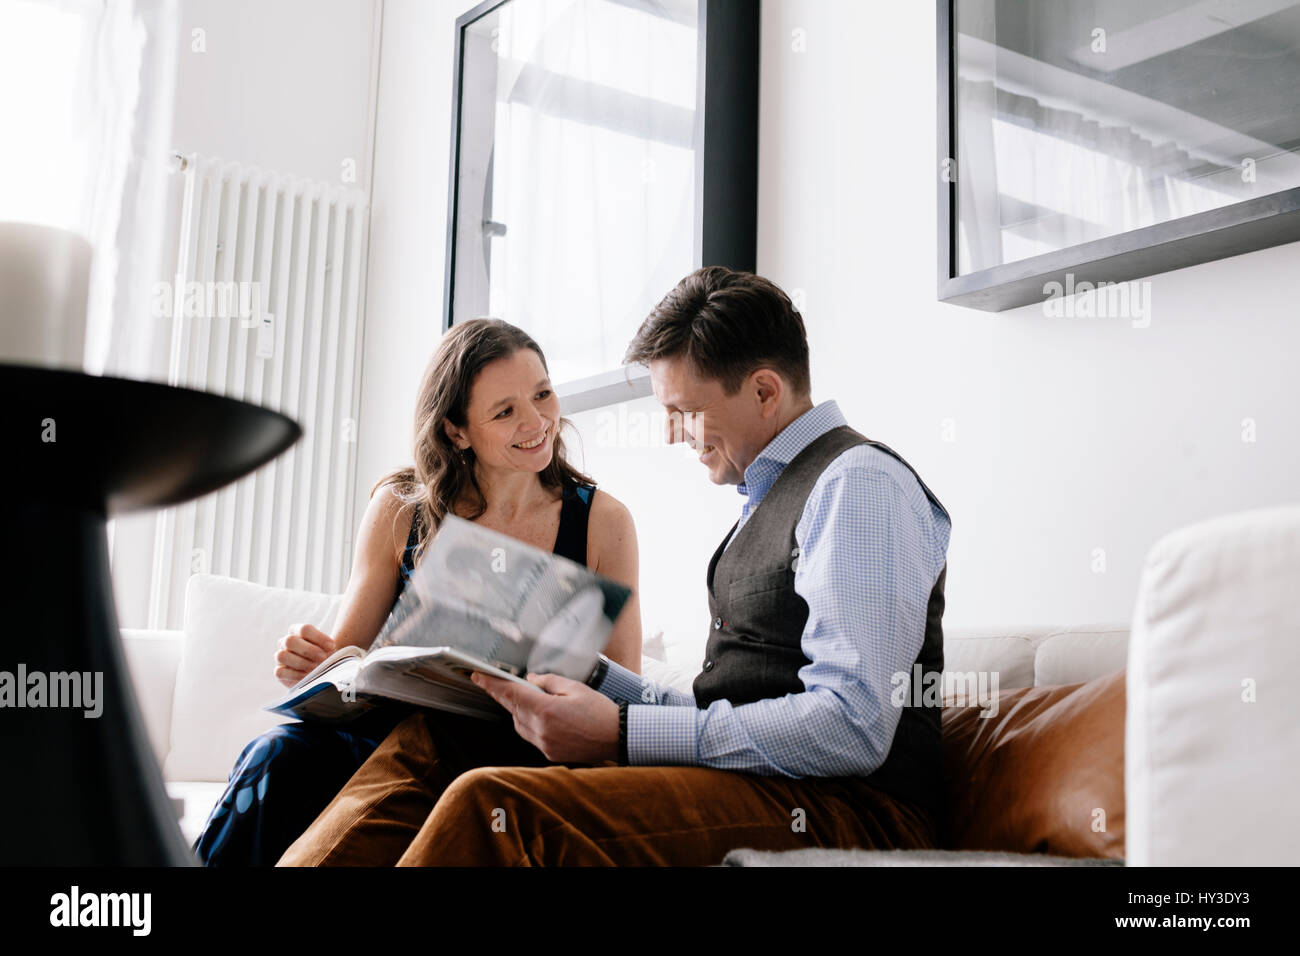 Allemagne, couple sitting on sofa and reading book Photo Stock